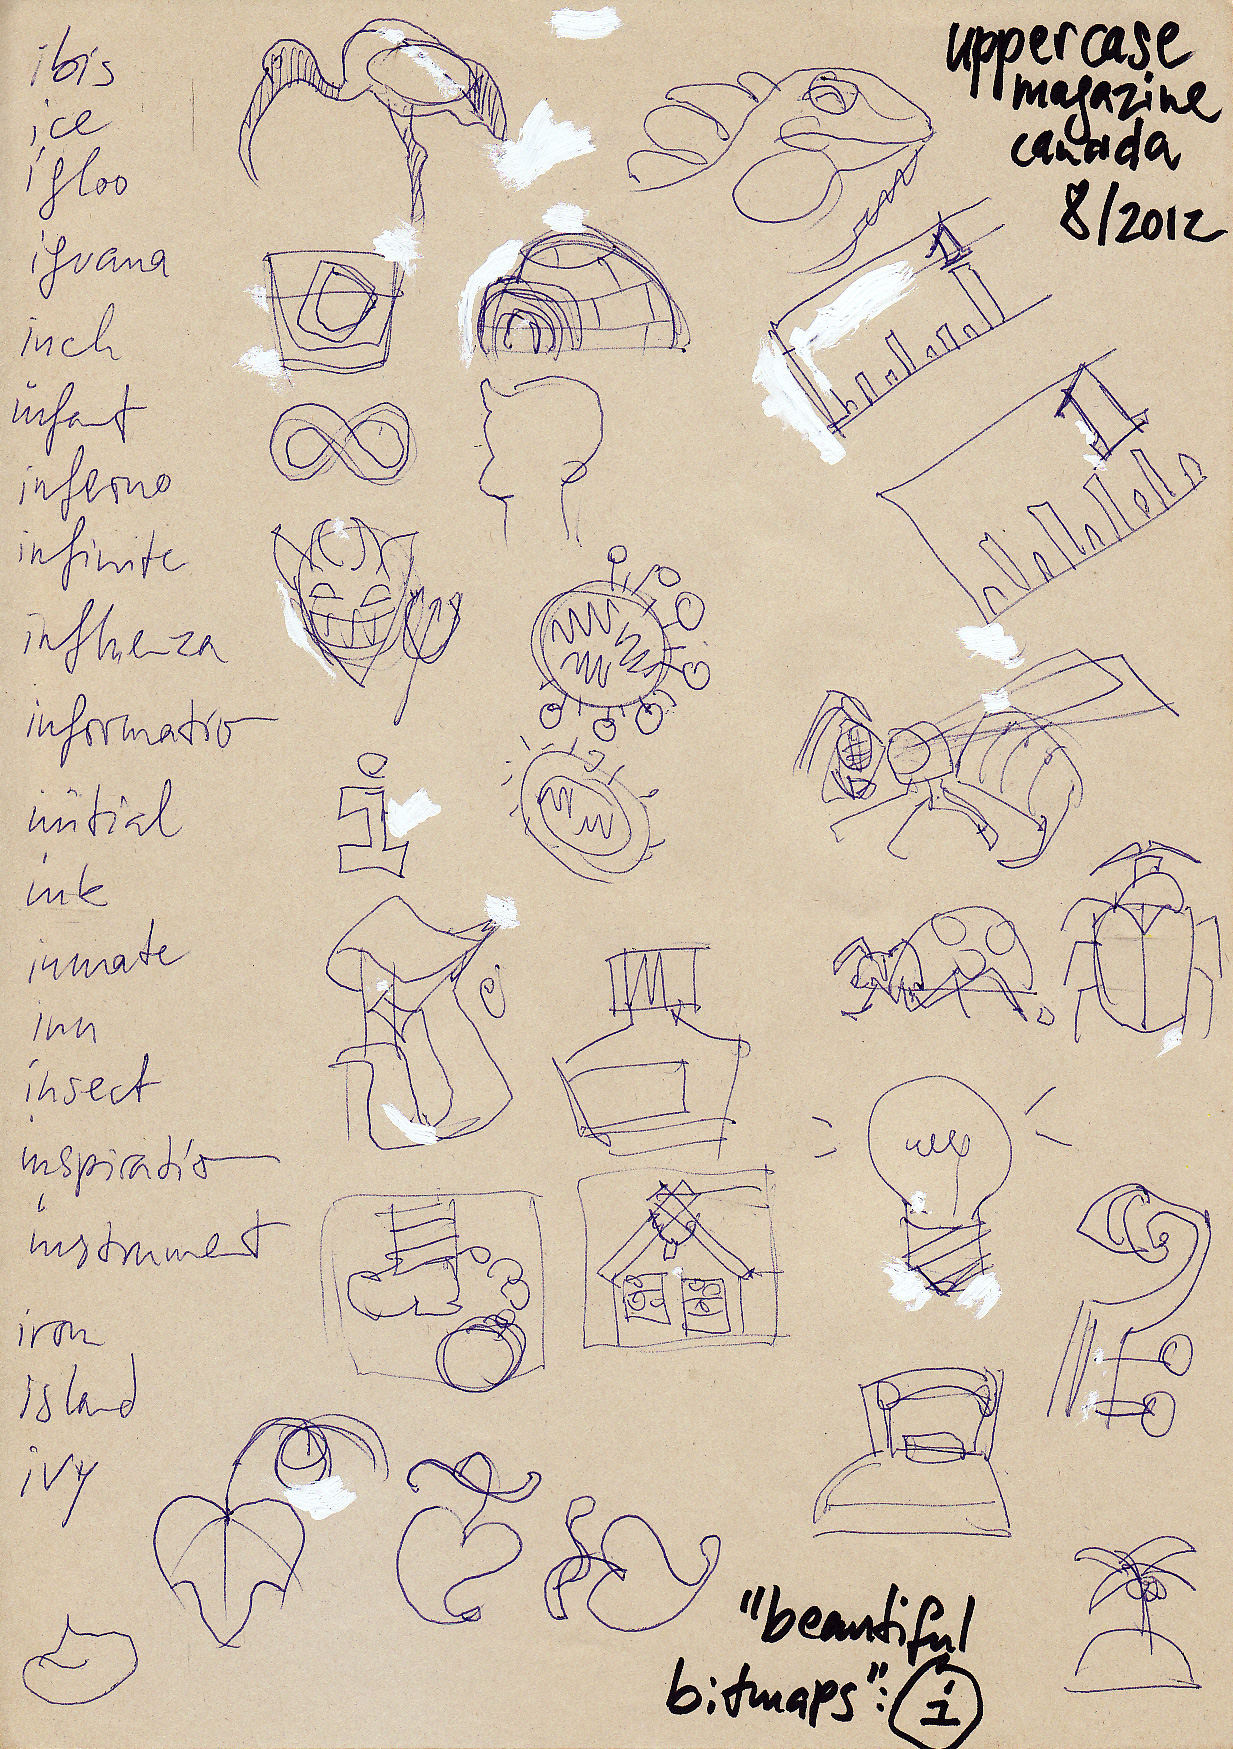 The initial concept sketches.